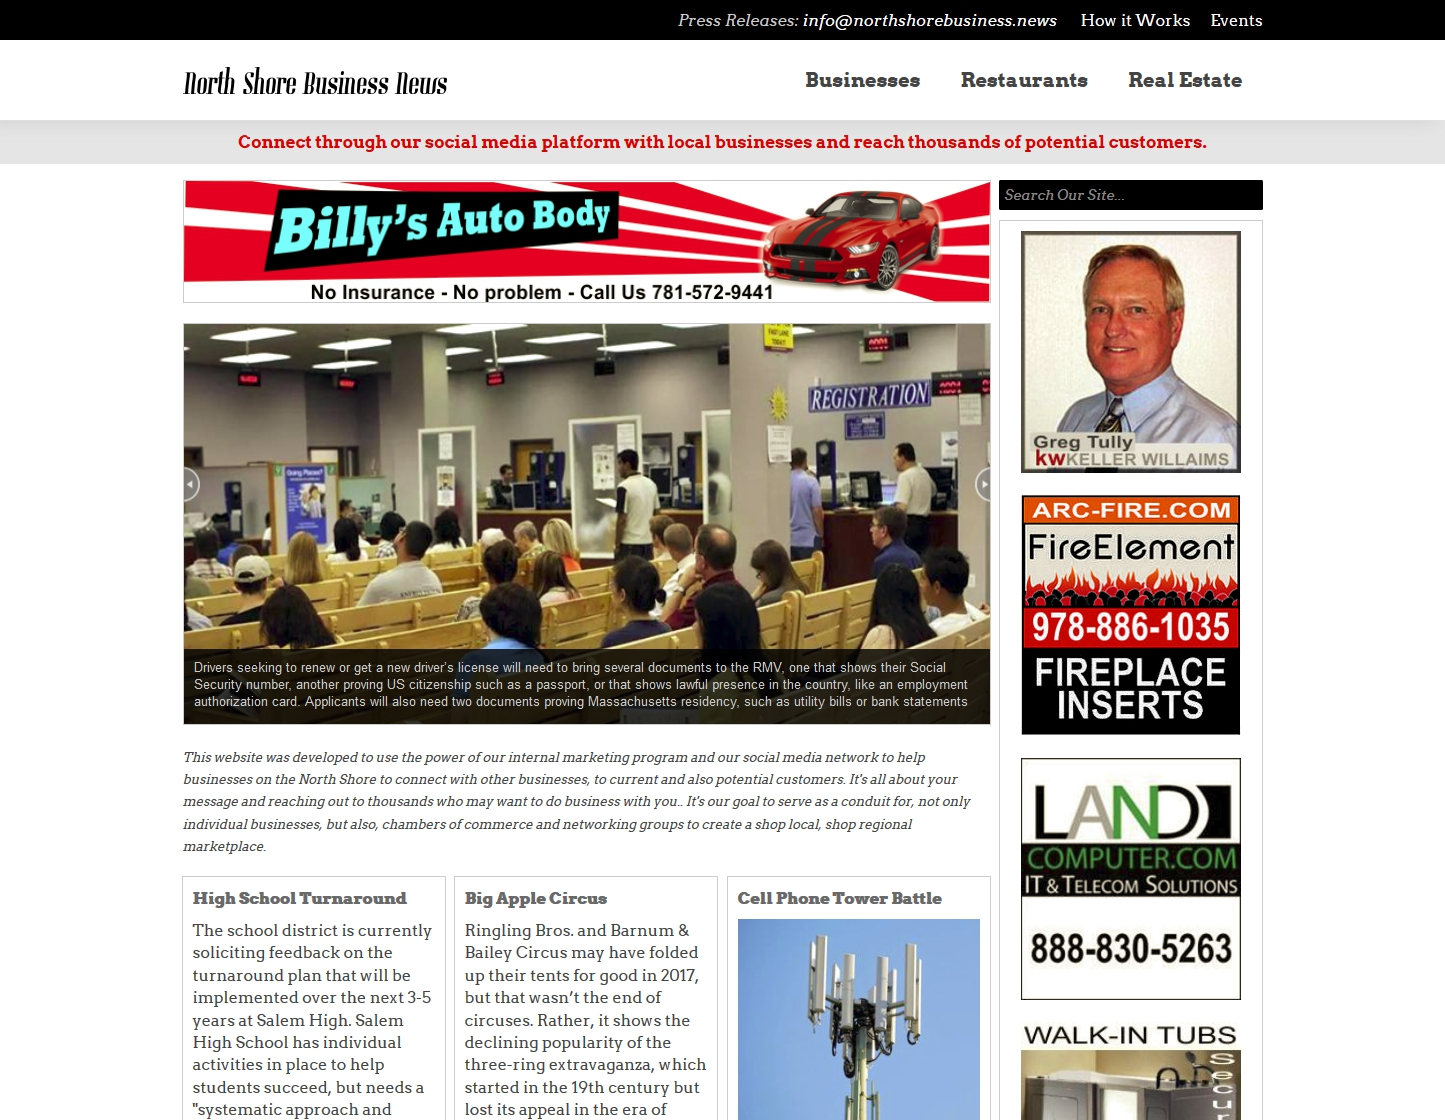 NORTH SHORE BUSINESS NEWS